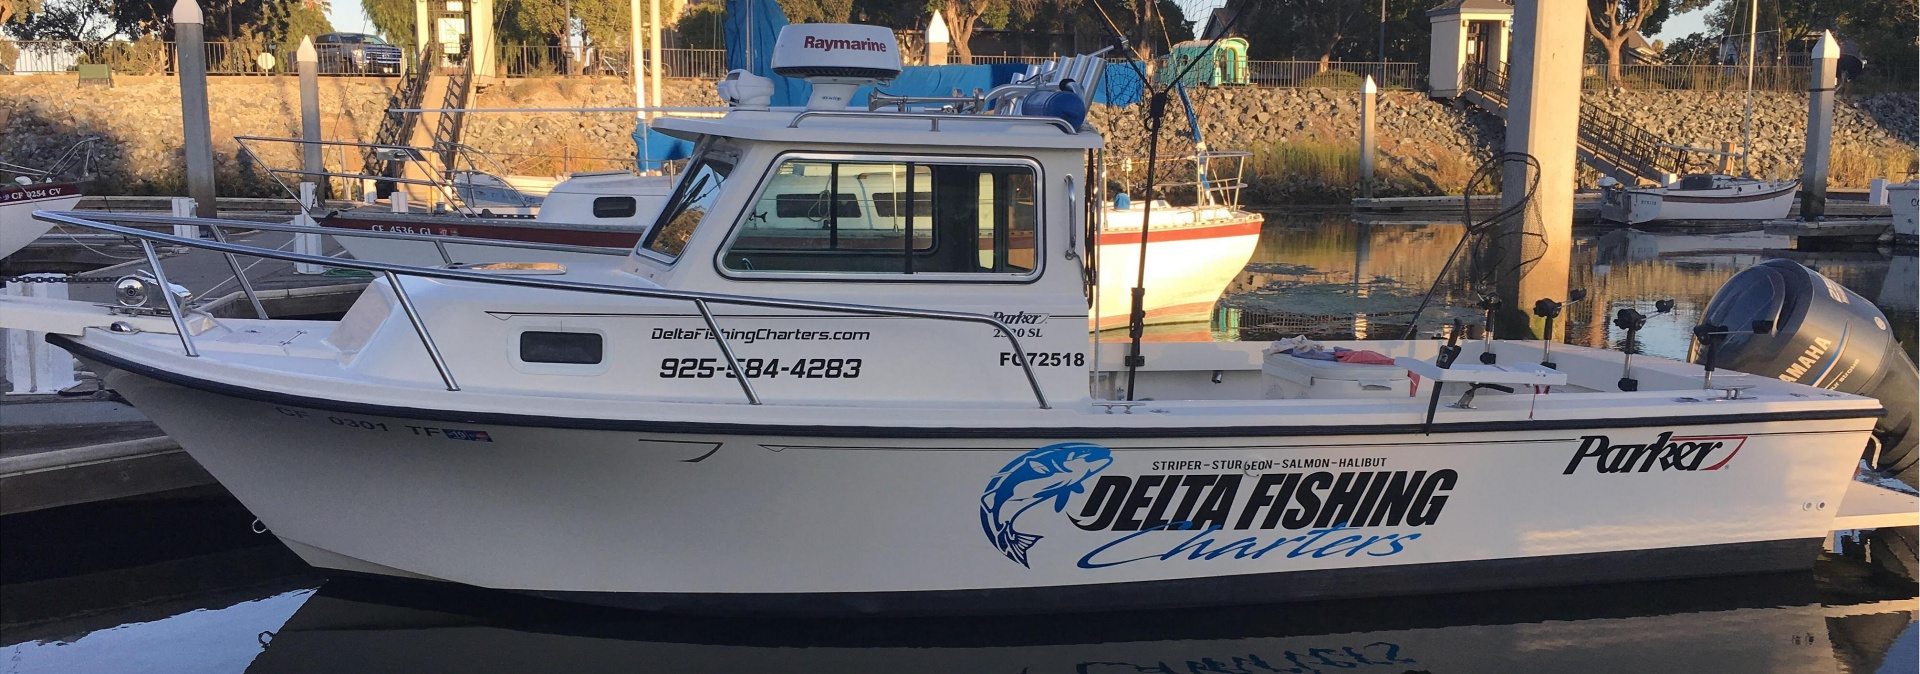 Delta Fishing Charters Boats - Best Fishing Guides California